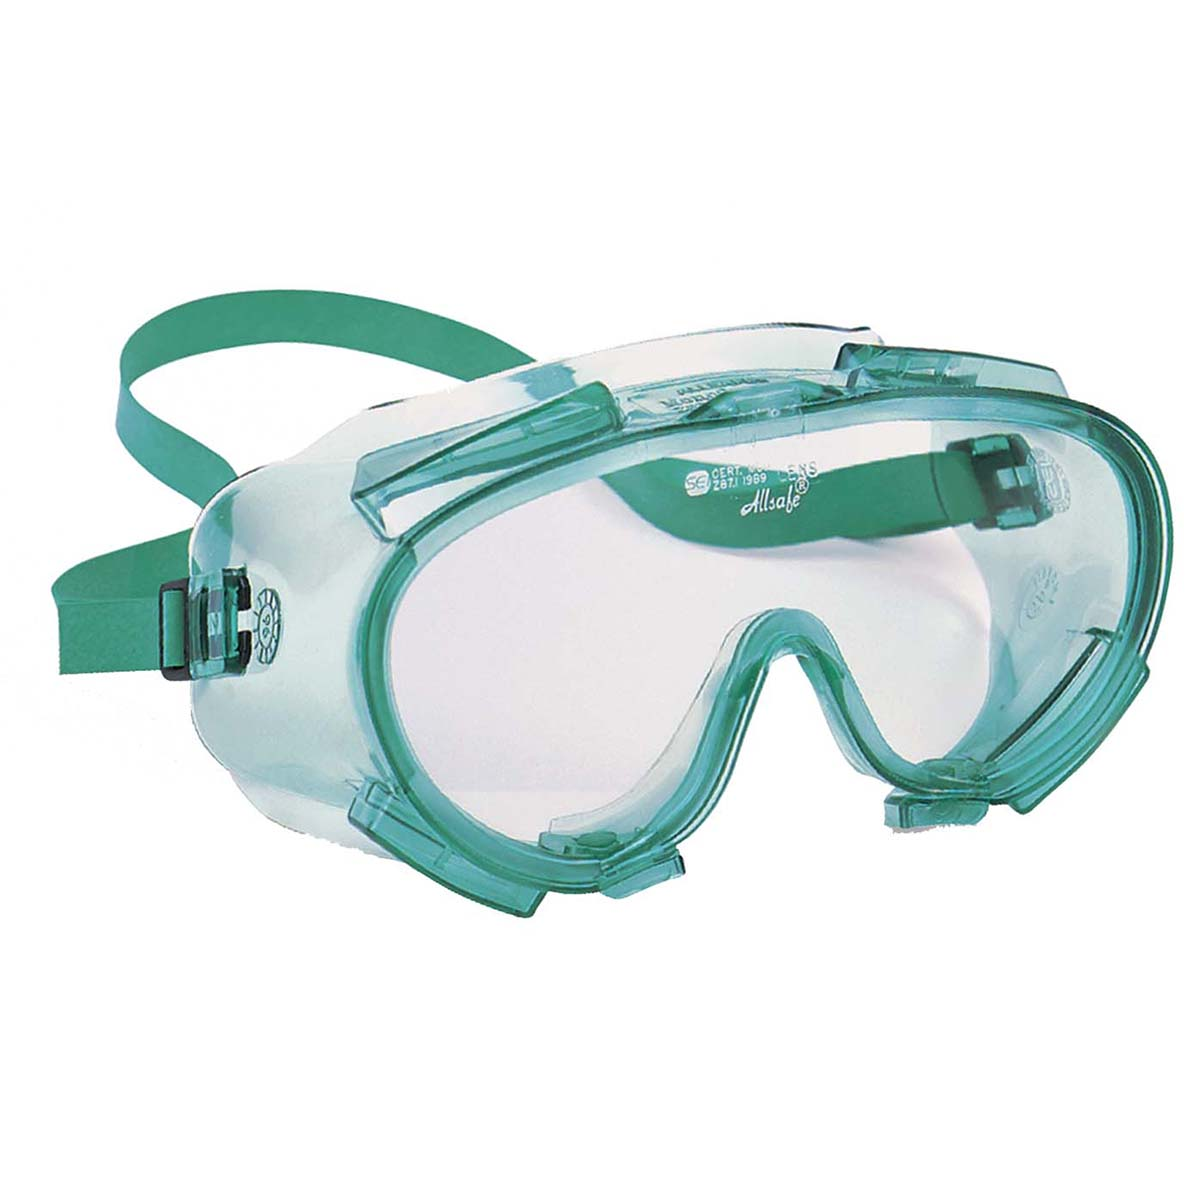 Jackson Safety V80 Monogoggle 211 Goggle Protection (14387), Anti-Fog Clear Lens, Green Frame, 36 Pairs / Case